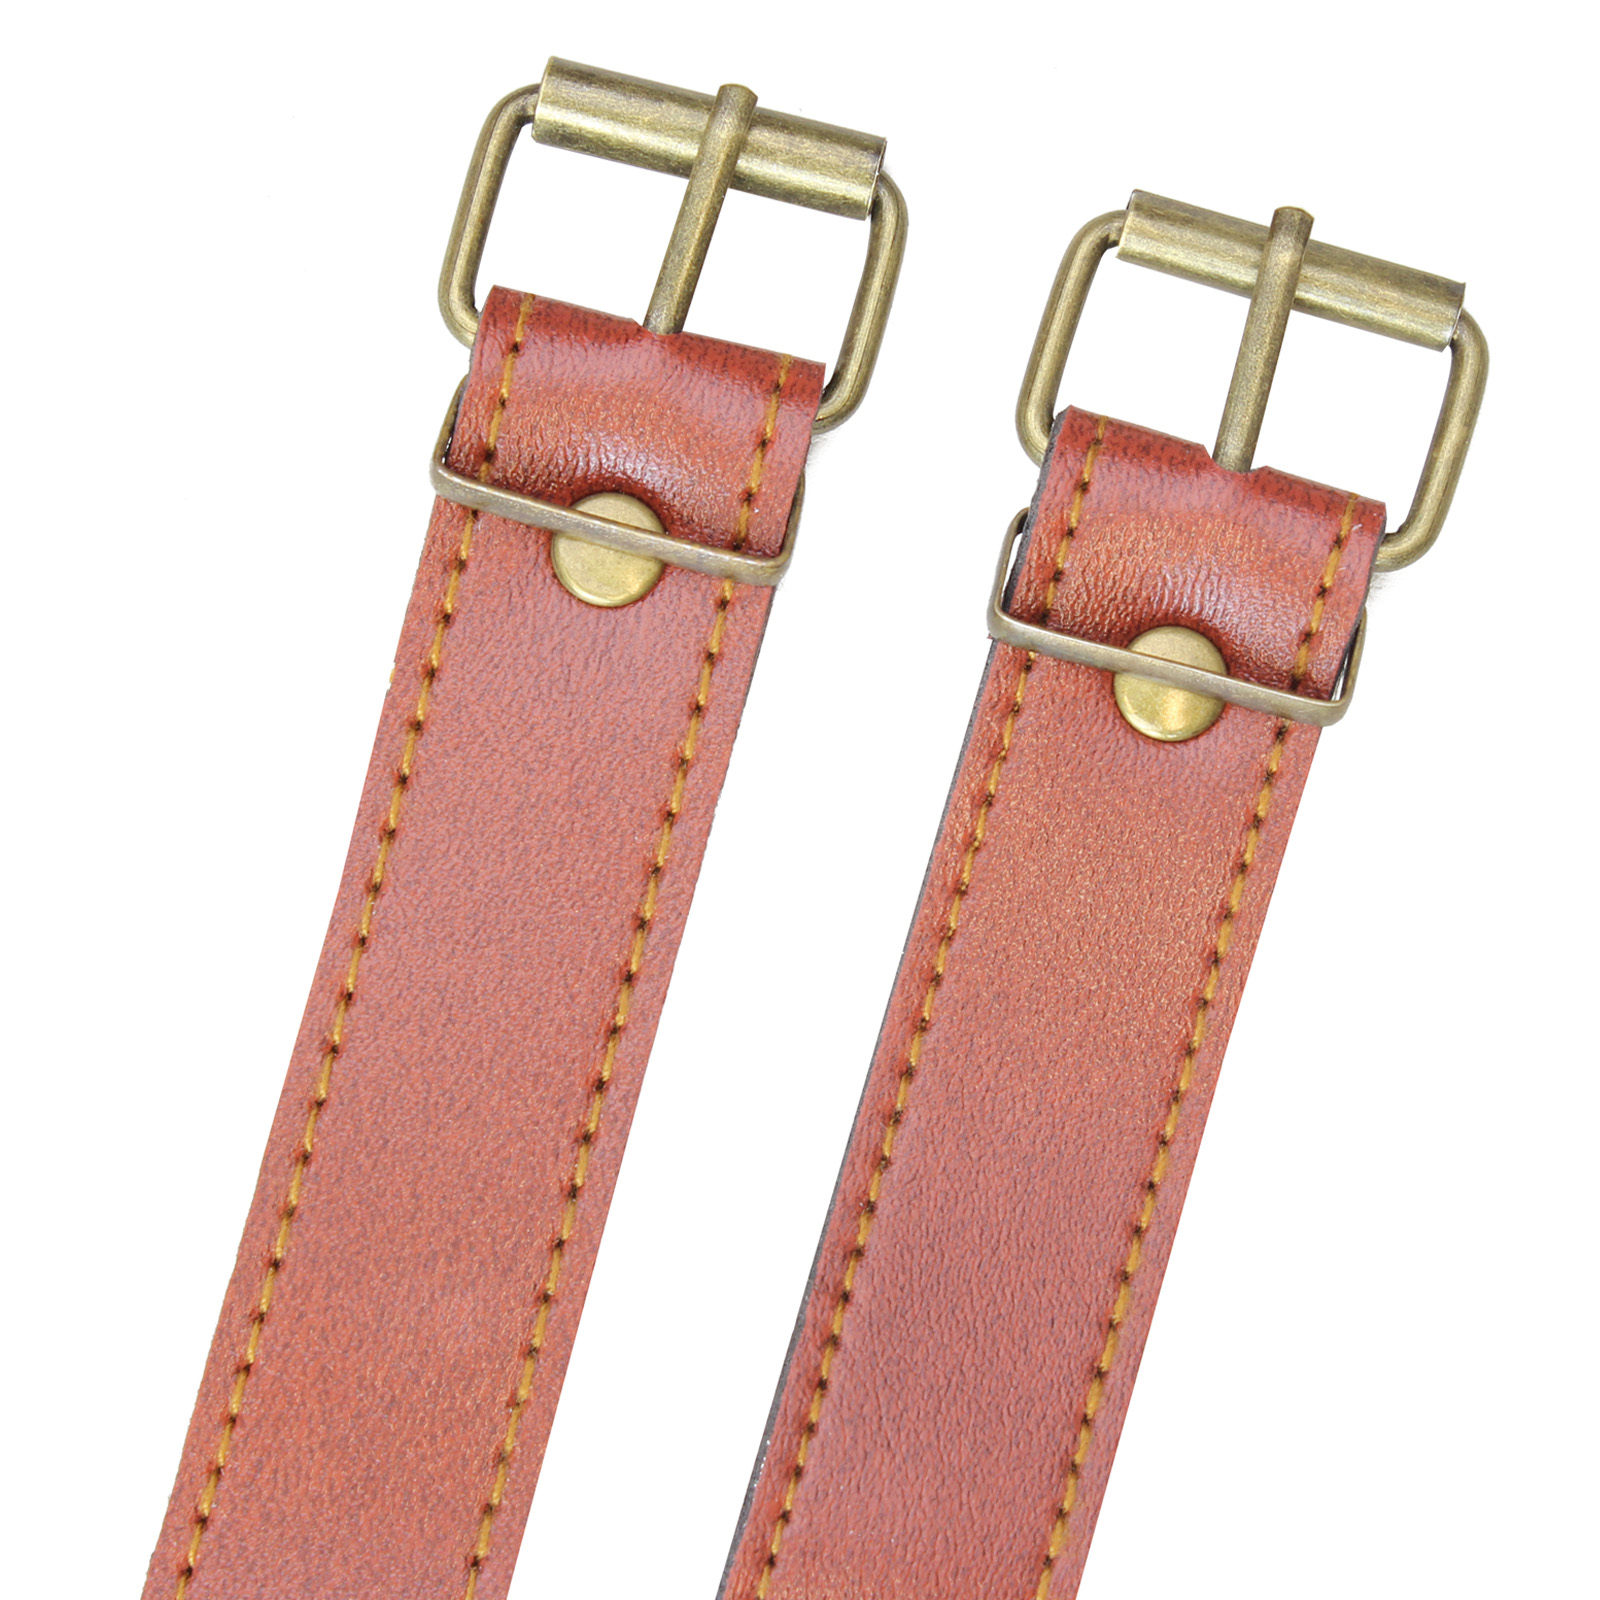 LIGHT BROWN UTILITY STRAP PU LEATHER 9.5 INCH BRASS BUCKLE//BICYCLE//BASKET//25MM